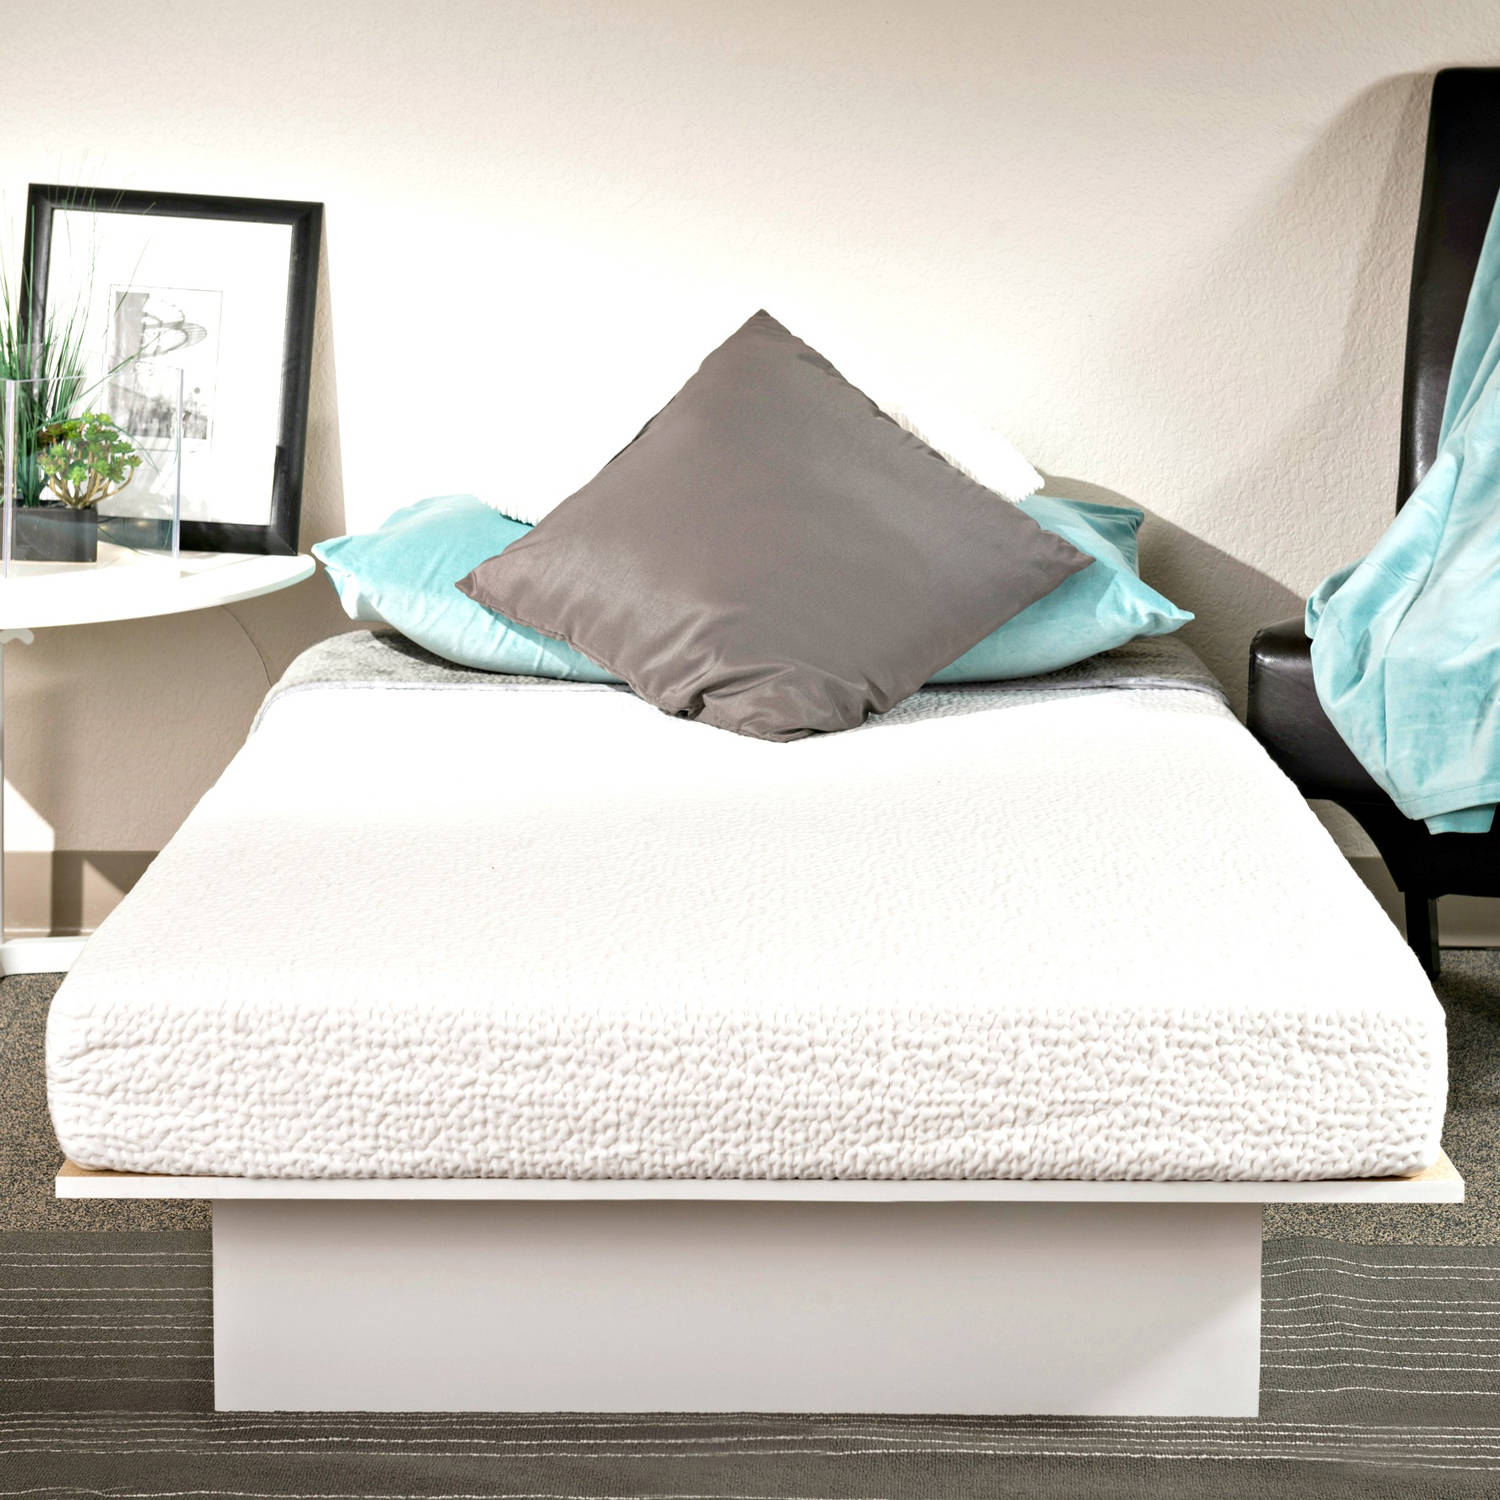 "HoMedics 6"" Memory Foam Mattress, Multiple Sizes"